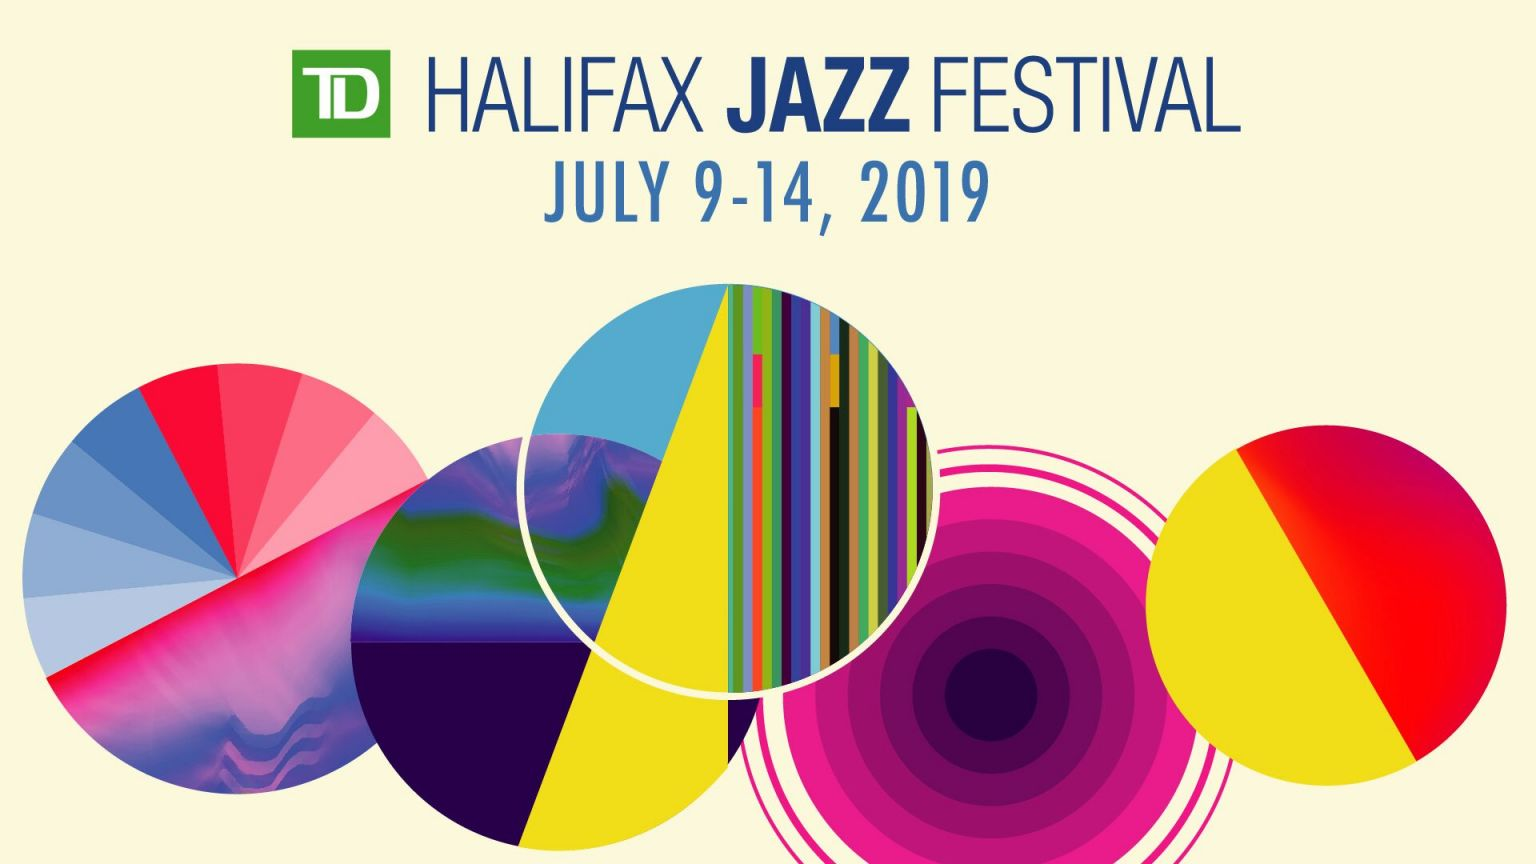 TD Halifax Jazz Festival Announces Its First Waterfront Acts